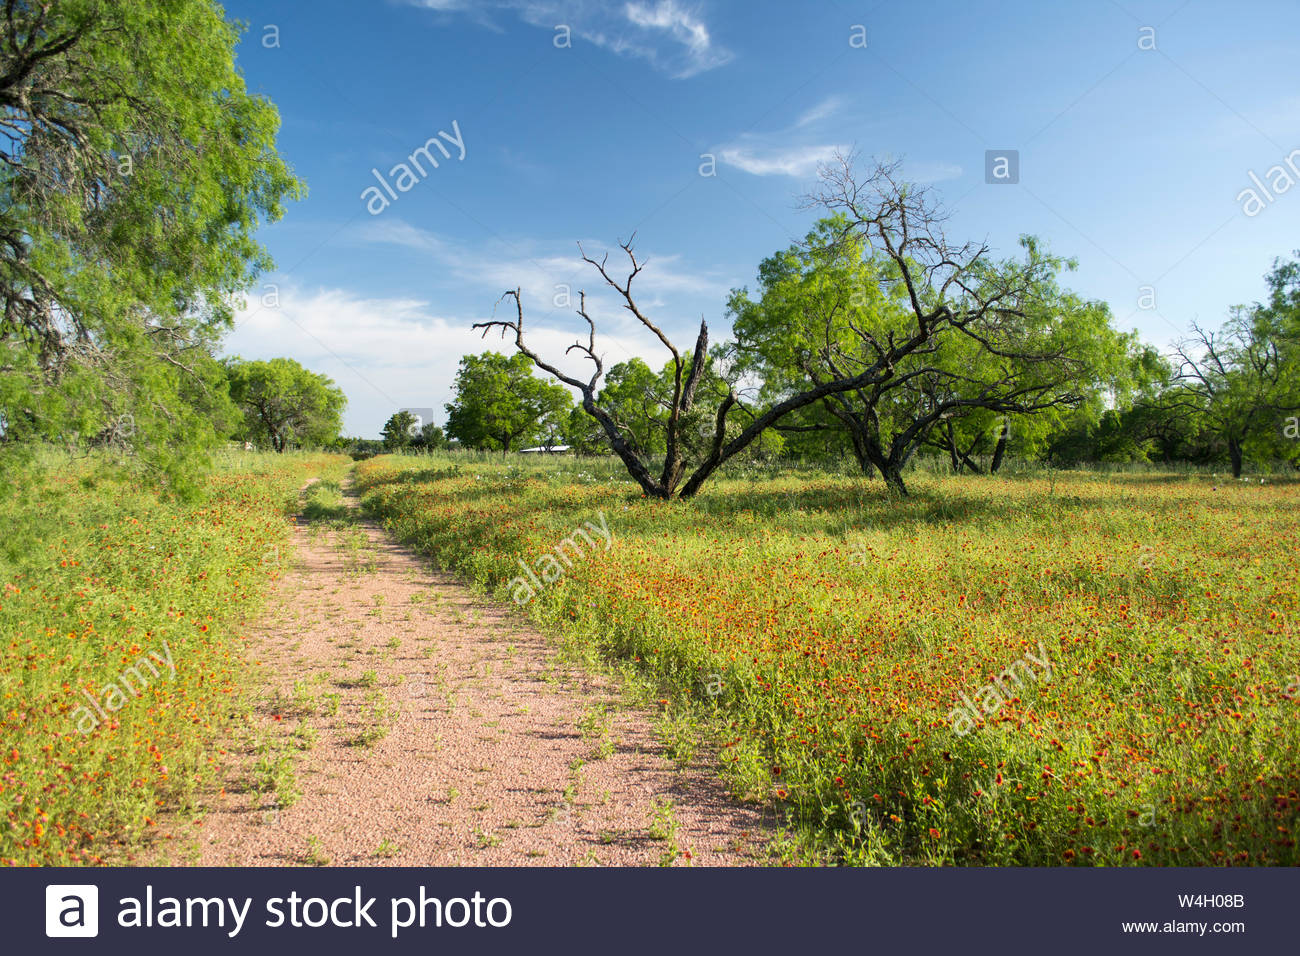 Country Lane Country Lane Through Wildflowers Country Lane And Flowers Mesquite Trees And Texas Hill Country Landscape Indian Blanket Flowers Usa Stock Photo Alamy